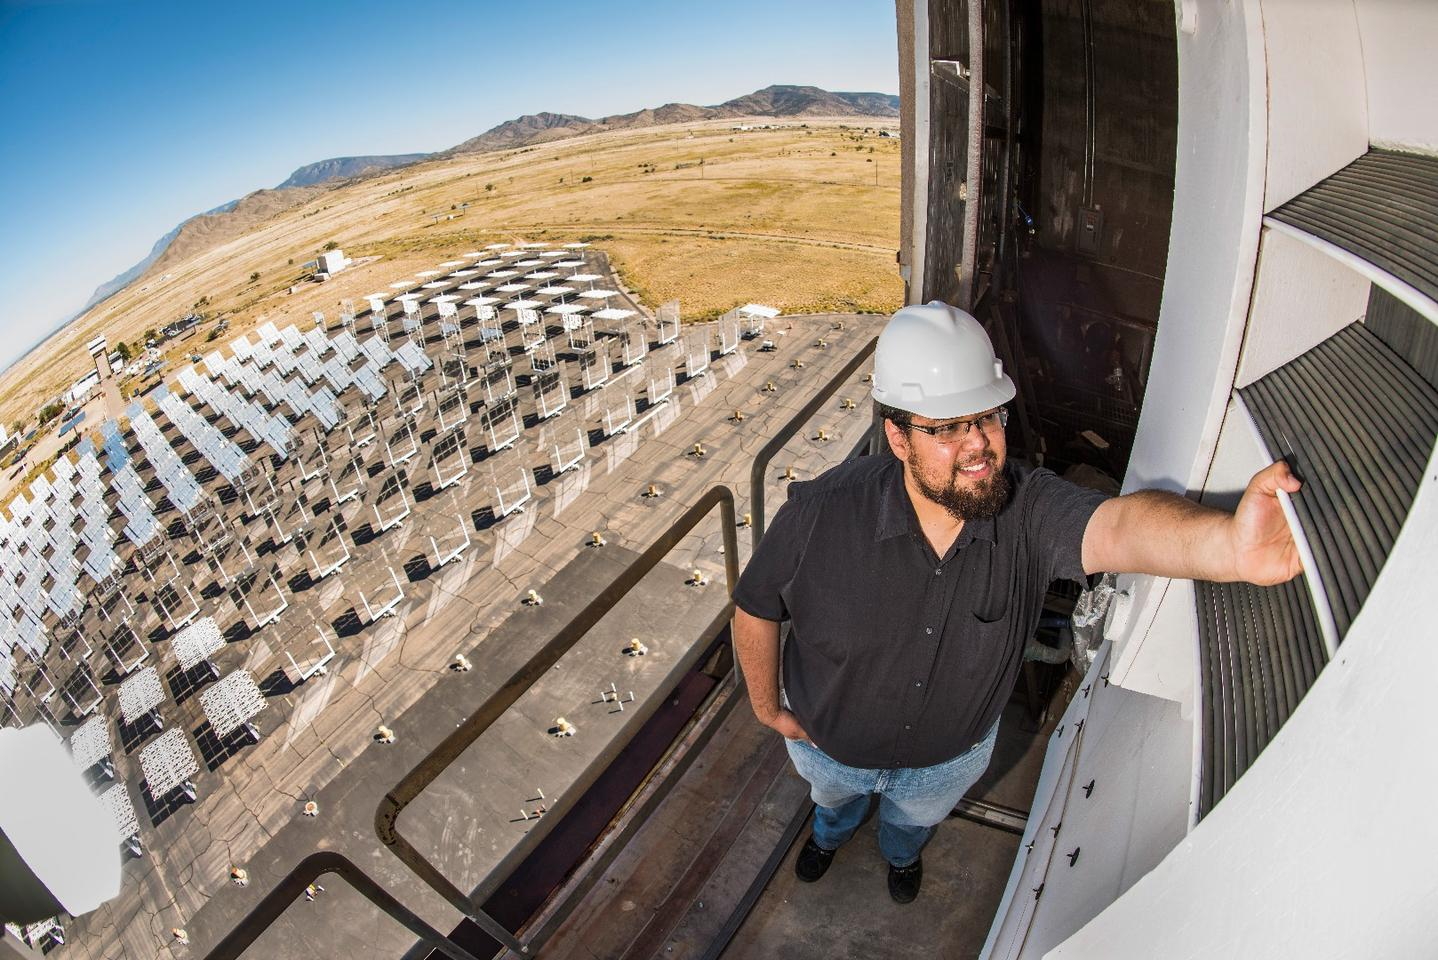 Engineers from Sandia National Laboratories have developed a new type of receiver for concentrating solar power plants, which should improve the sunlight capture efficiency of smaller facilities